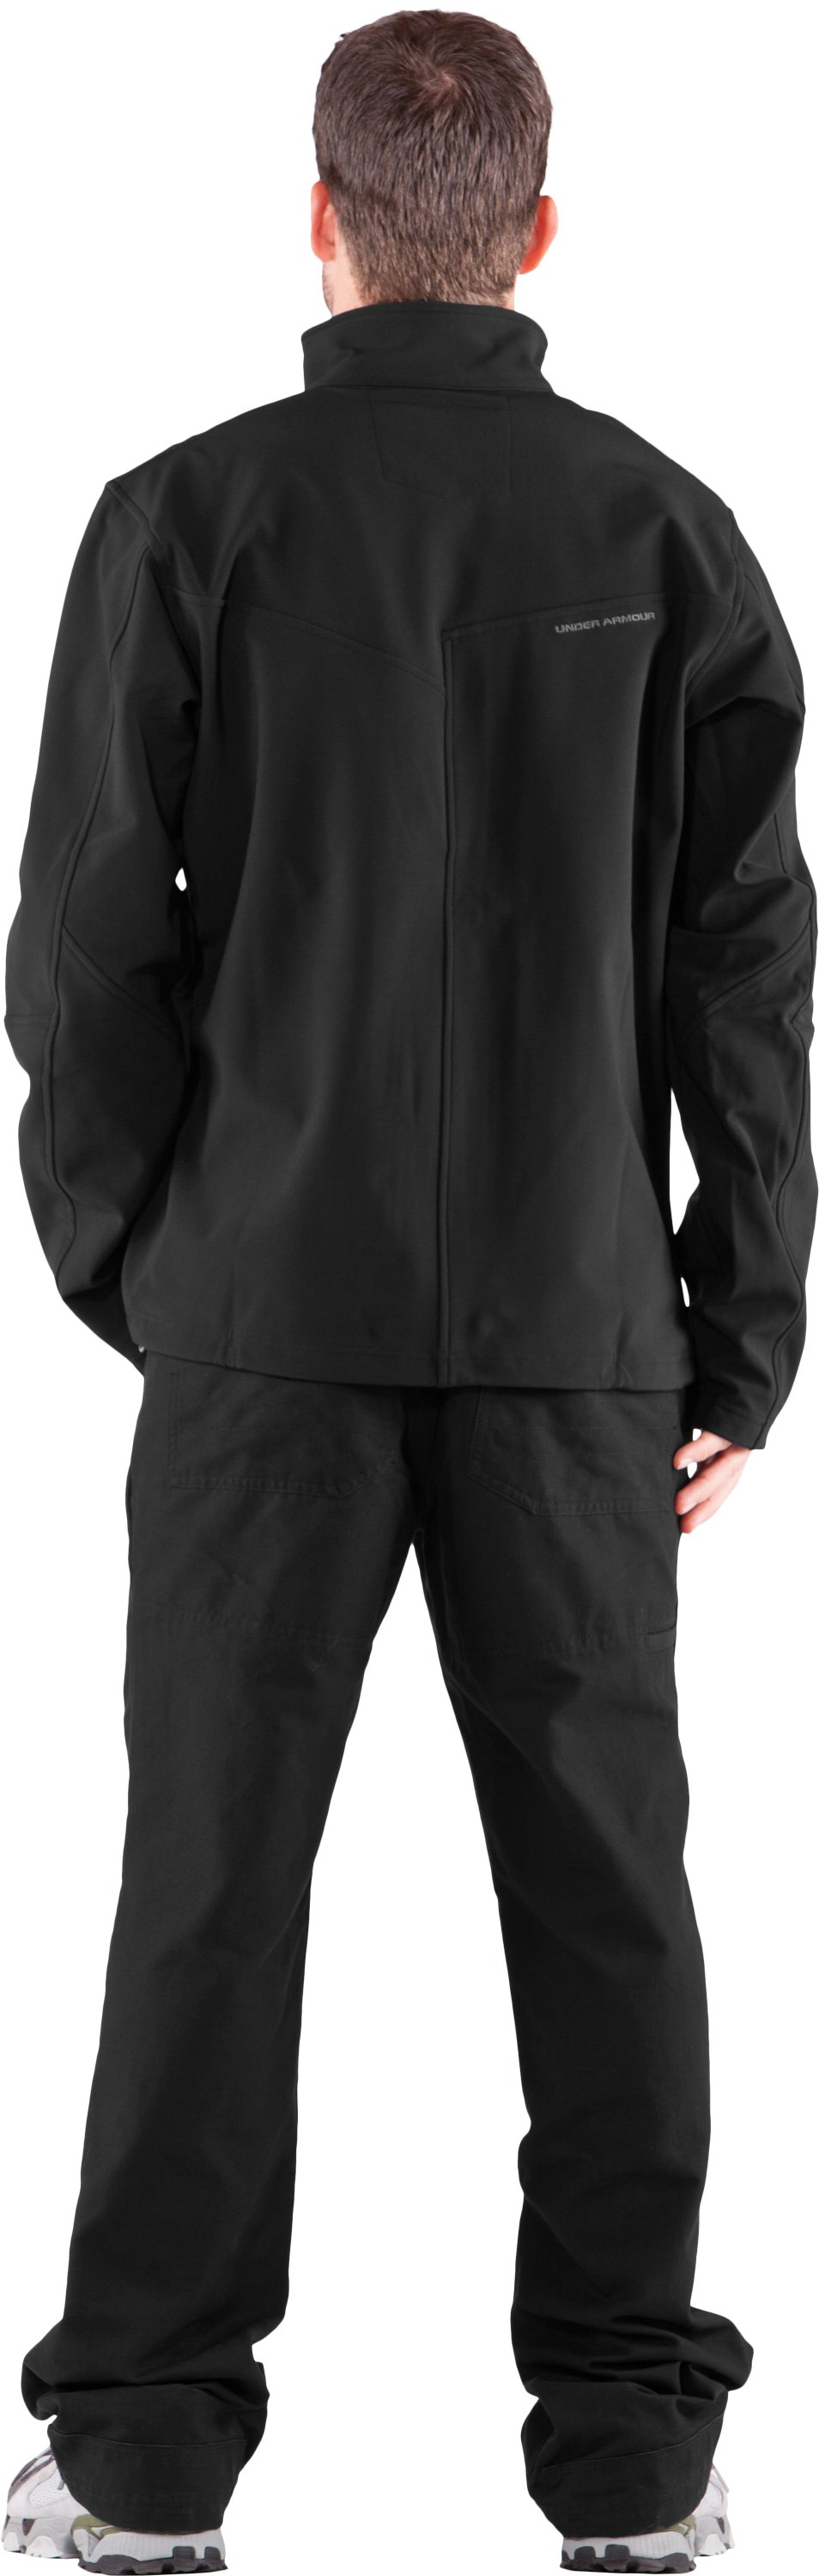 Men's WWP Jacket, Black , Back